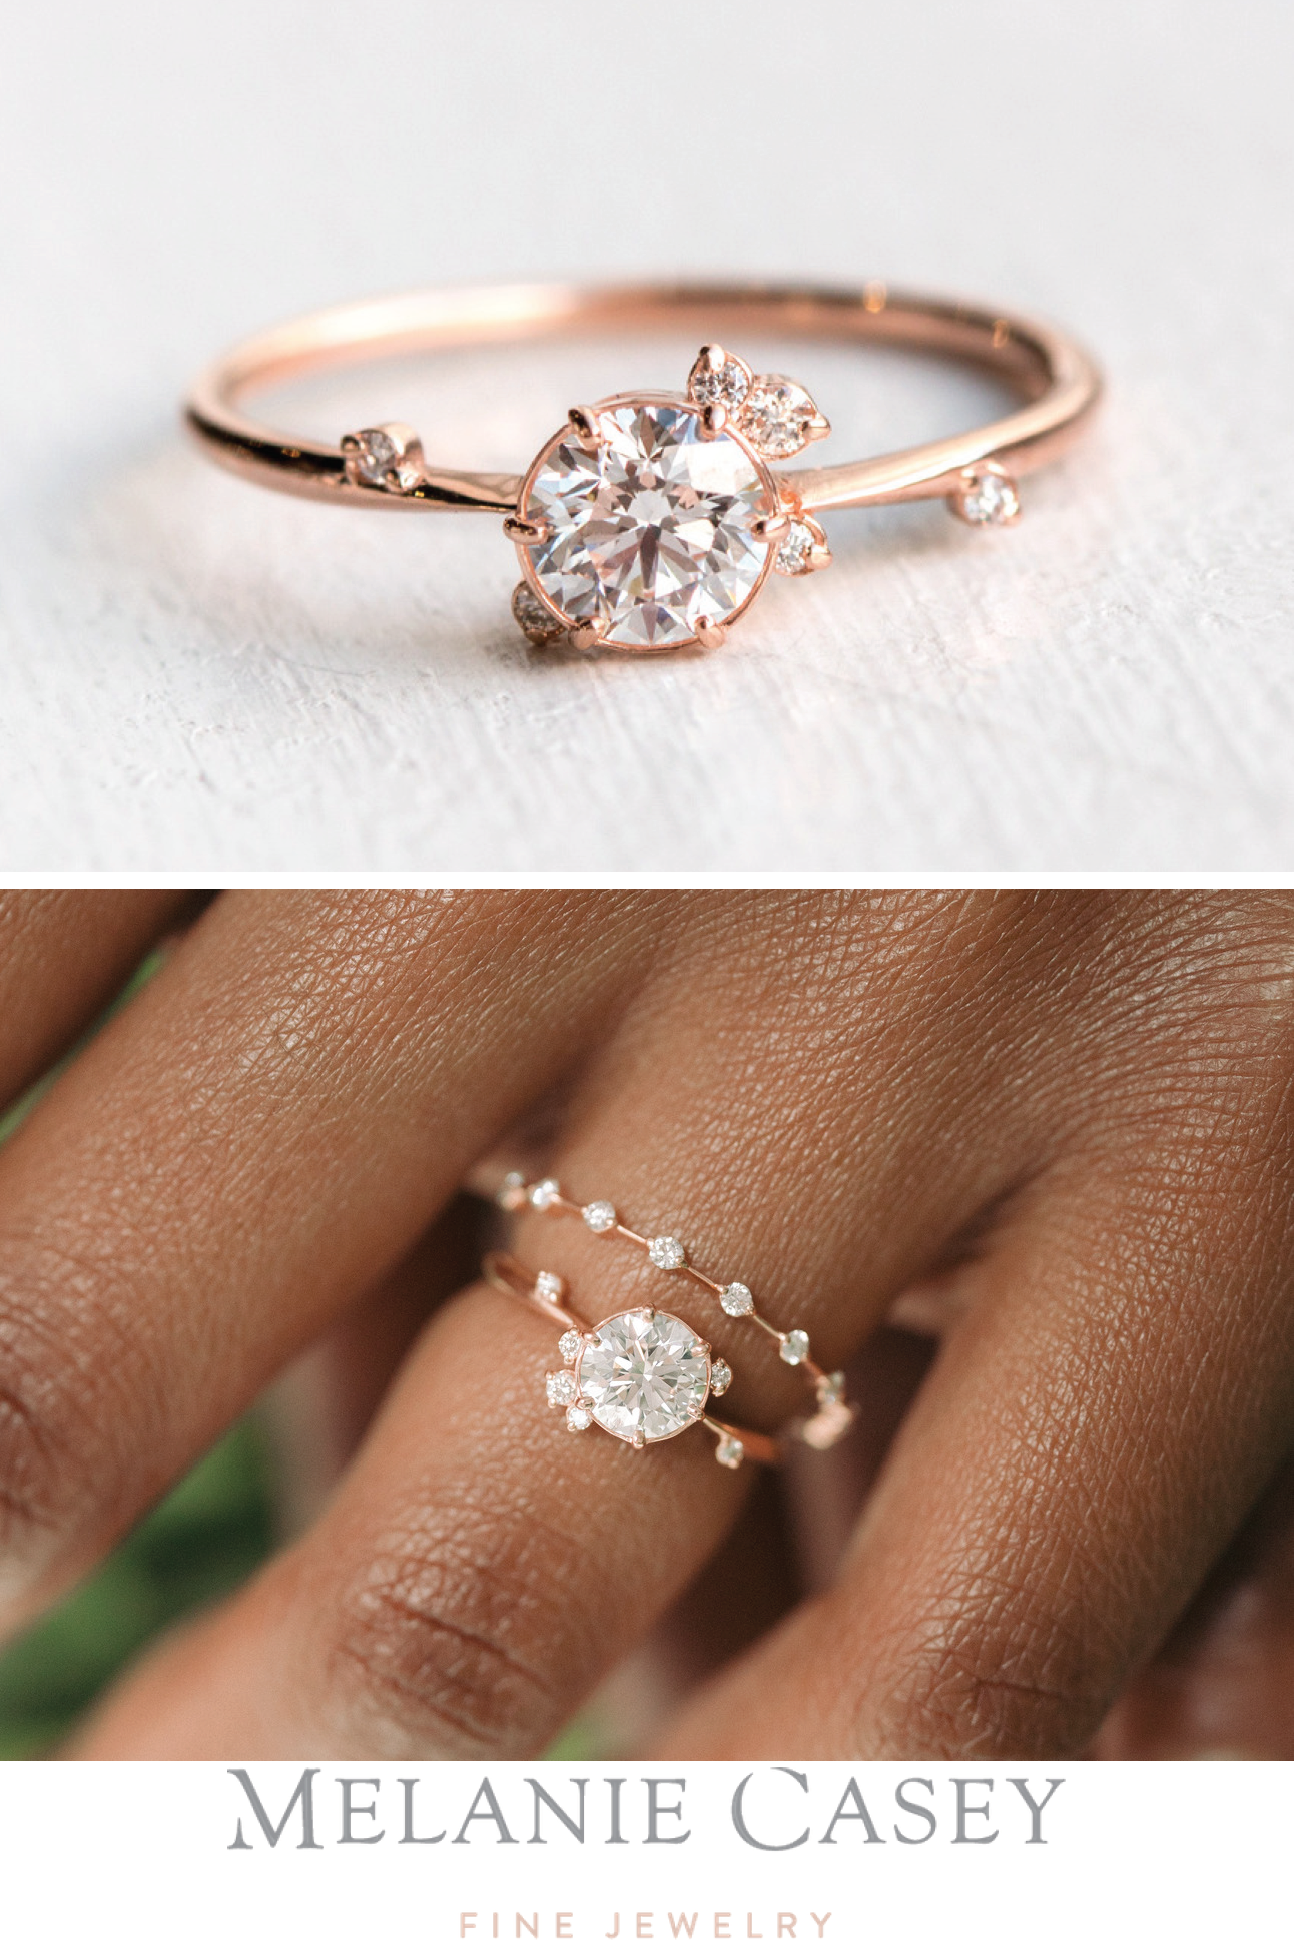 To A Flame Ring Round Diamond Rose Gold Engagement Ring 14k